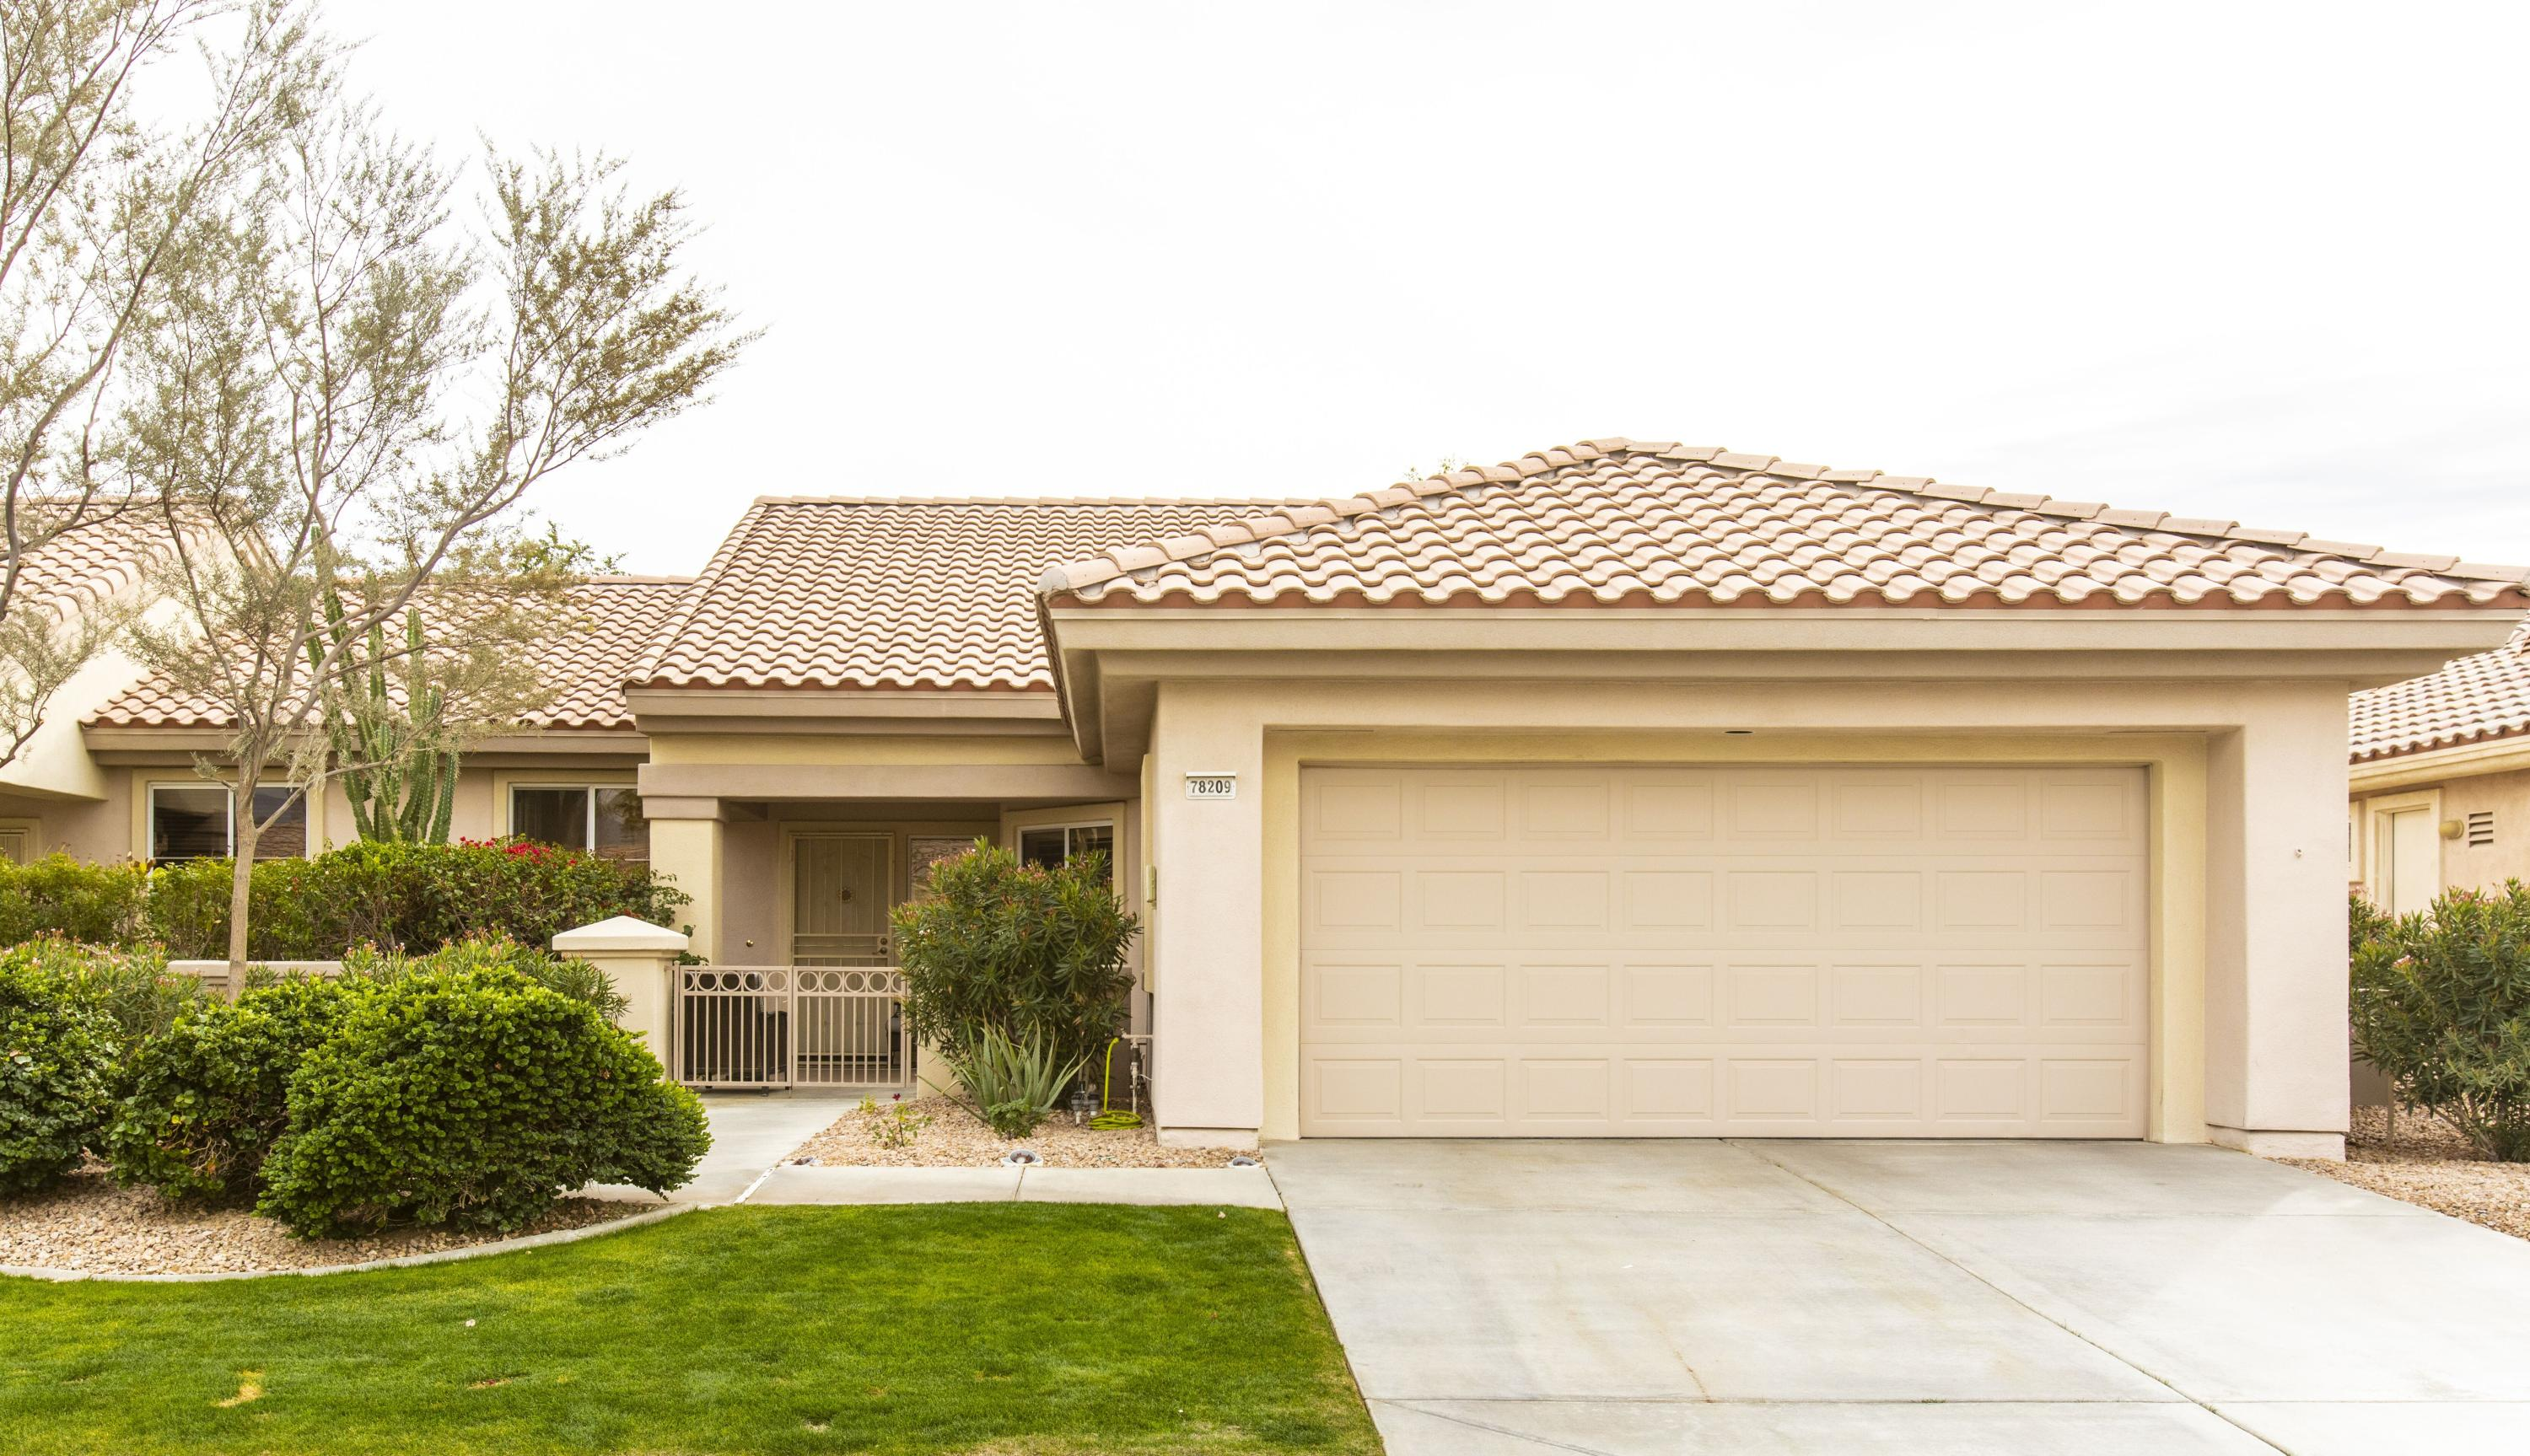 Photo of 78209 Yucca Blossom Drive, Palm Desert, CA 92211